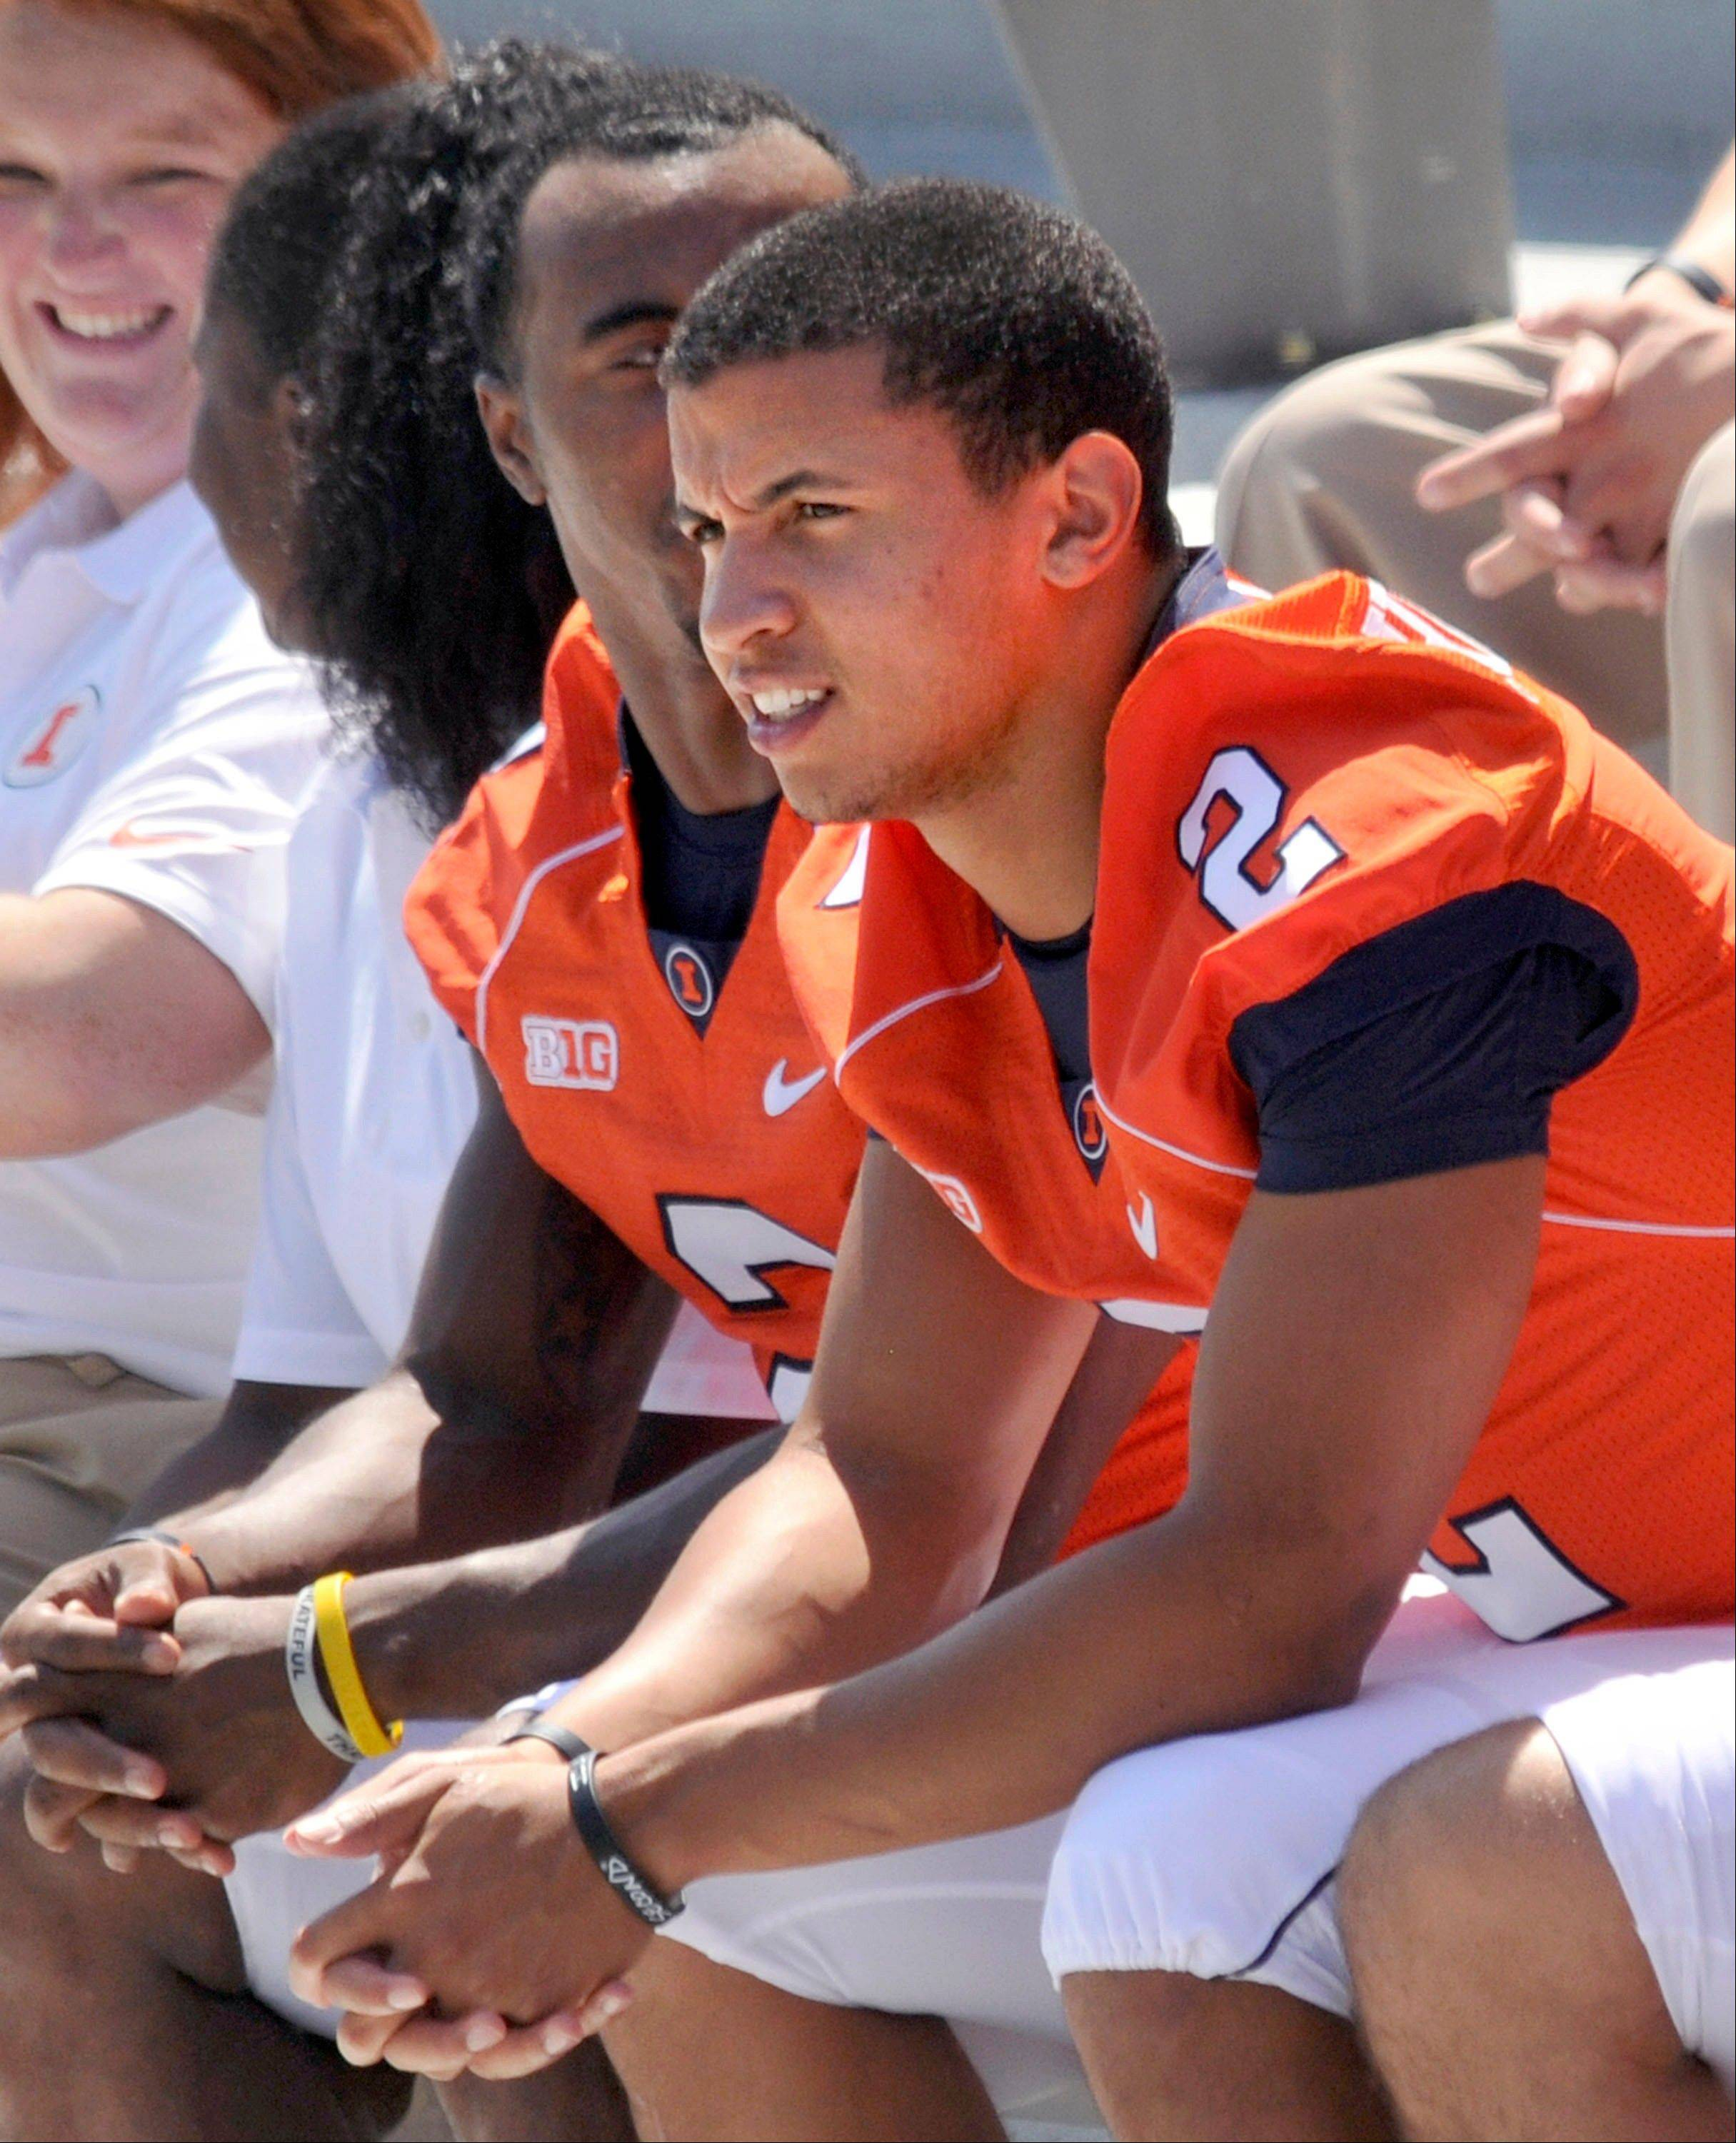 Illinois quarterback Nathan Scheelhaase, right, waits patiently with teammates, including V'Angelo Bentley, for a team photo Sunday during media day at Memorial Stadium in Champaign. Coach Tim Beckman says Scheelhaase is his starter, but there's already speculation that fans will see freshman Aaron Bailey.